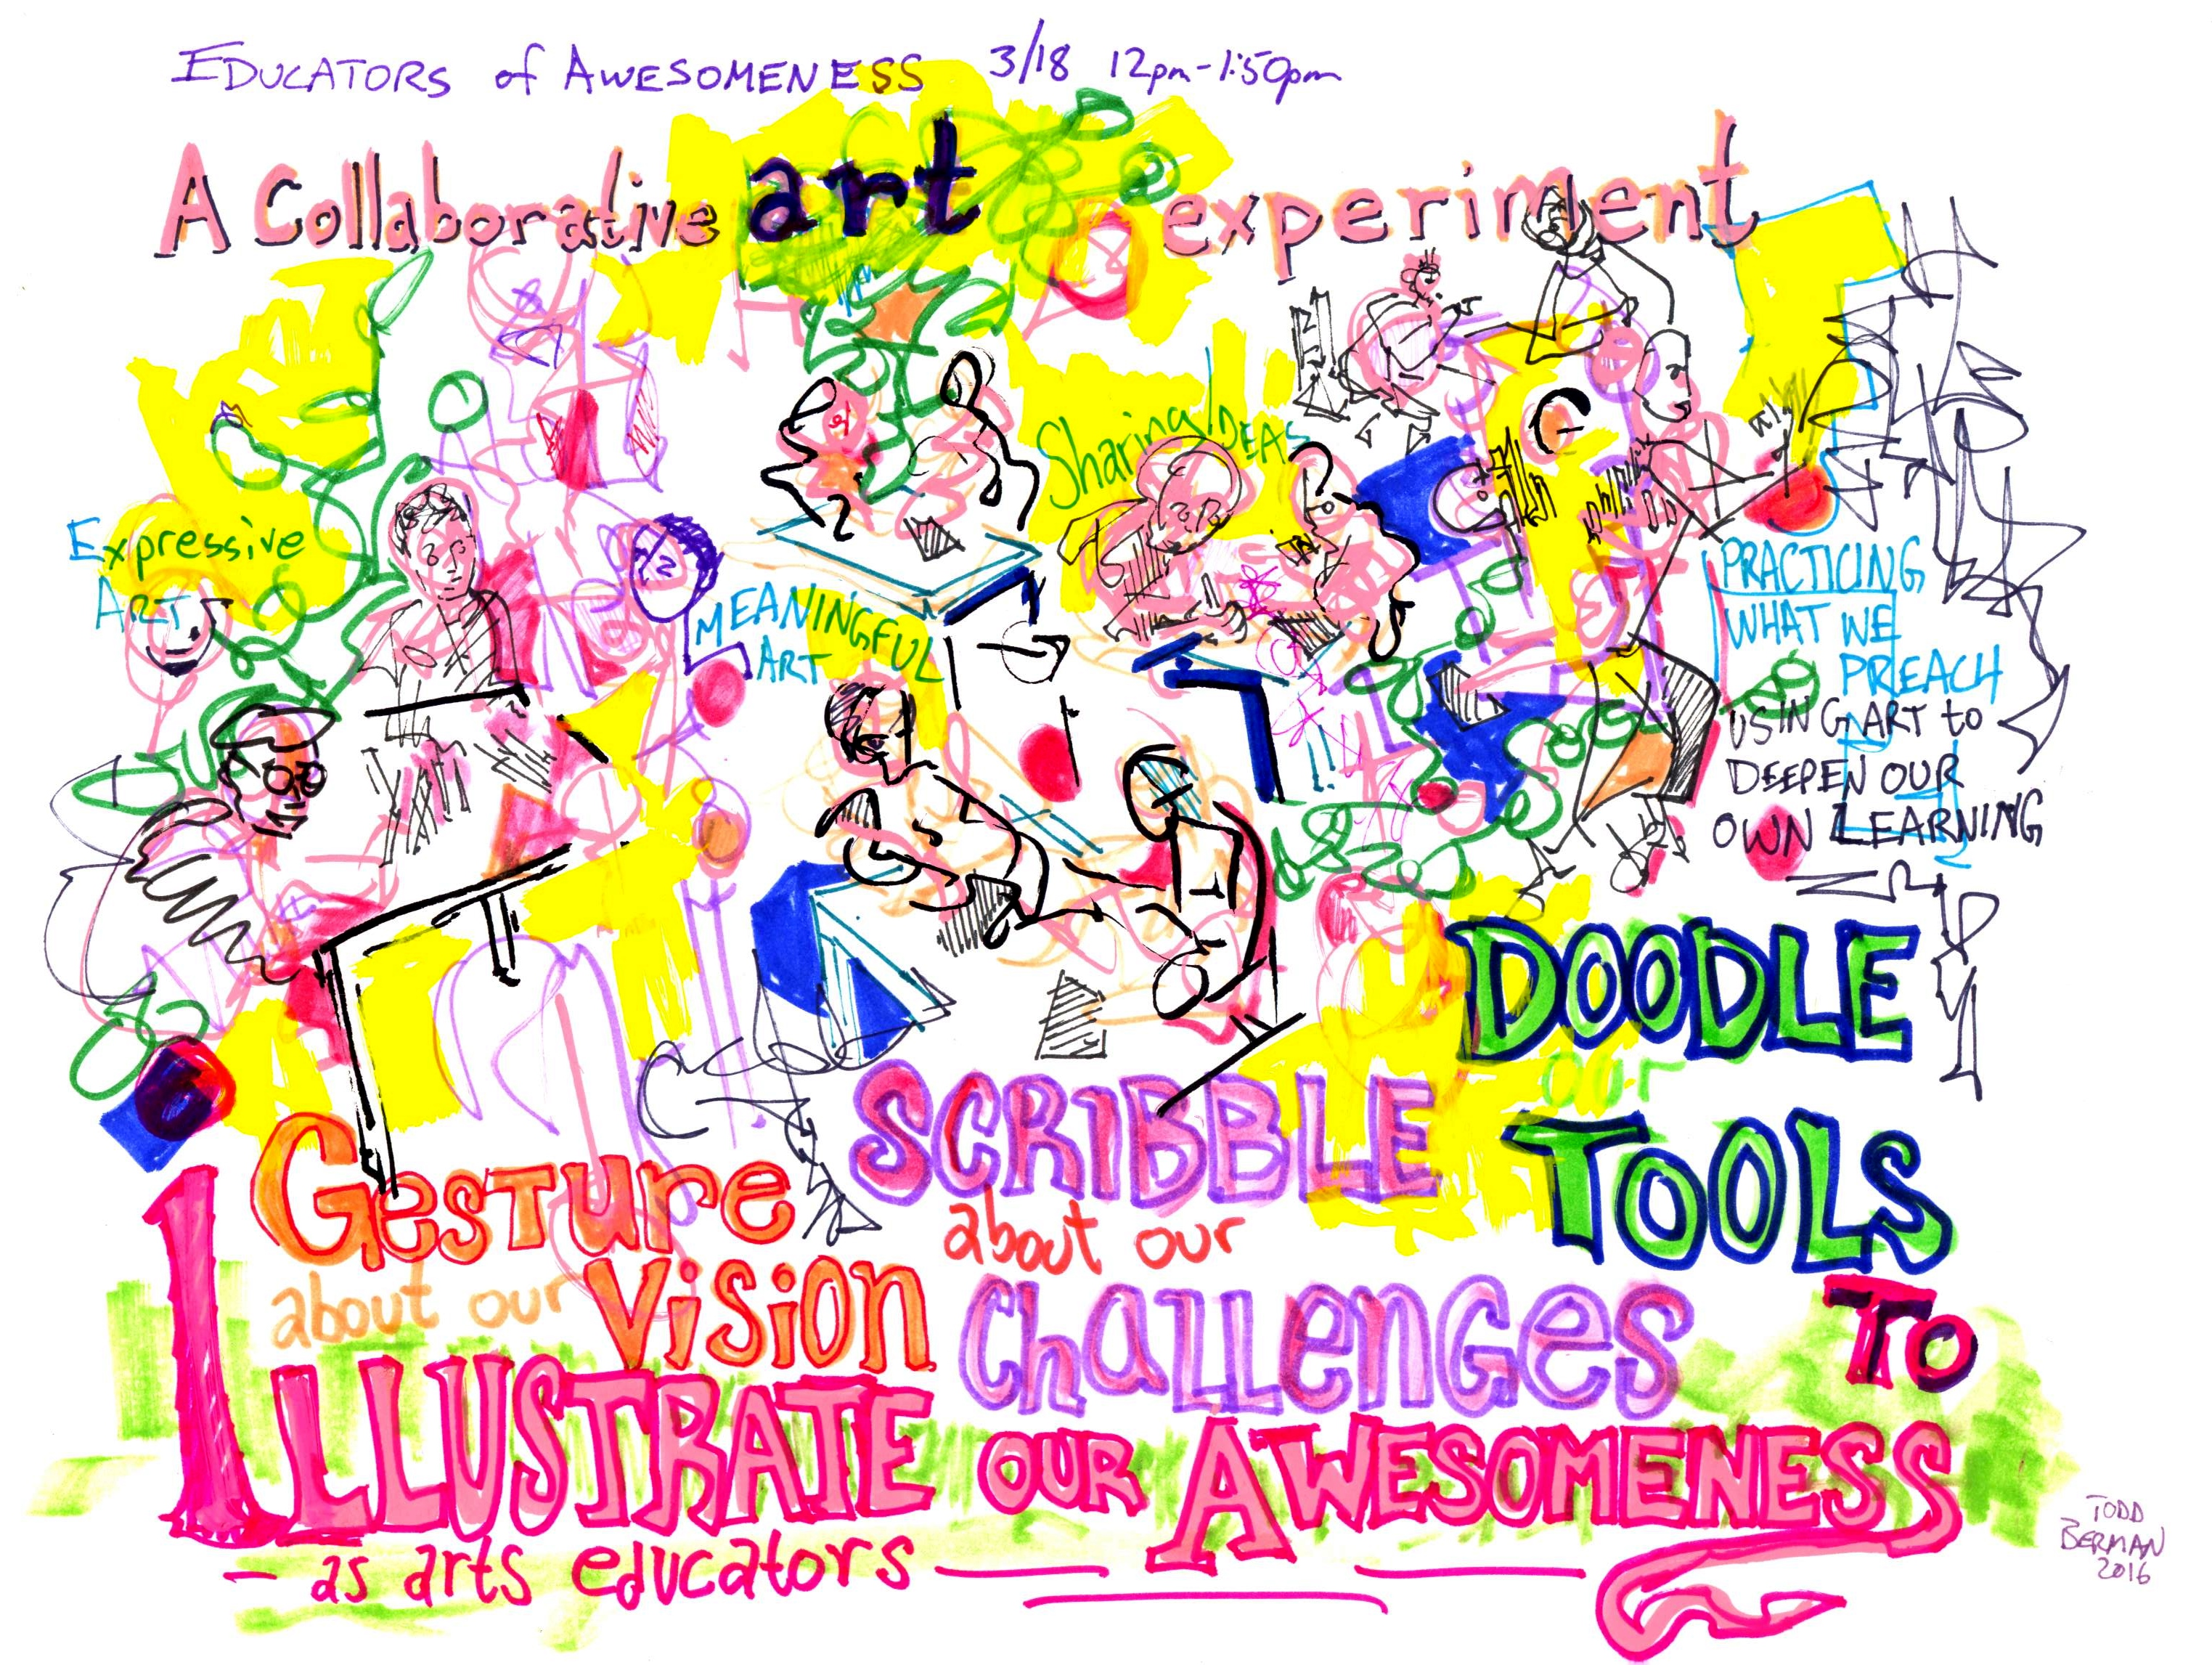 Educators%20of%20Awesomeness_A%20Collaborative%20Learning Through Art%20Experience on Parent Educator